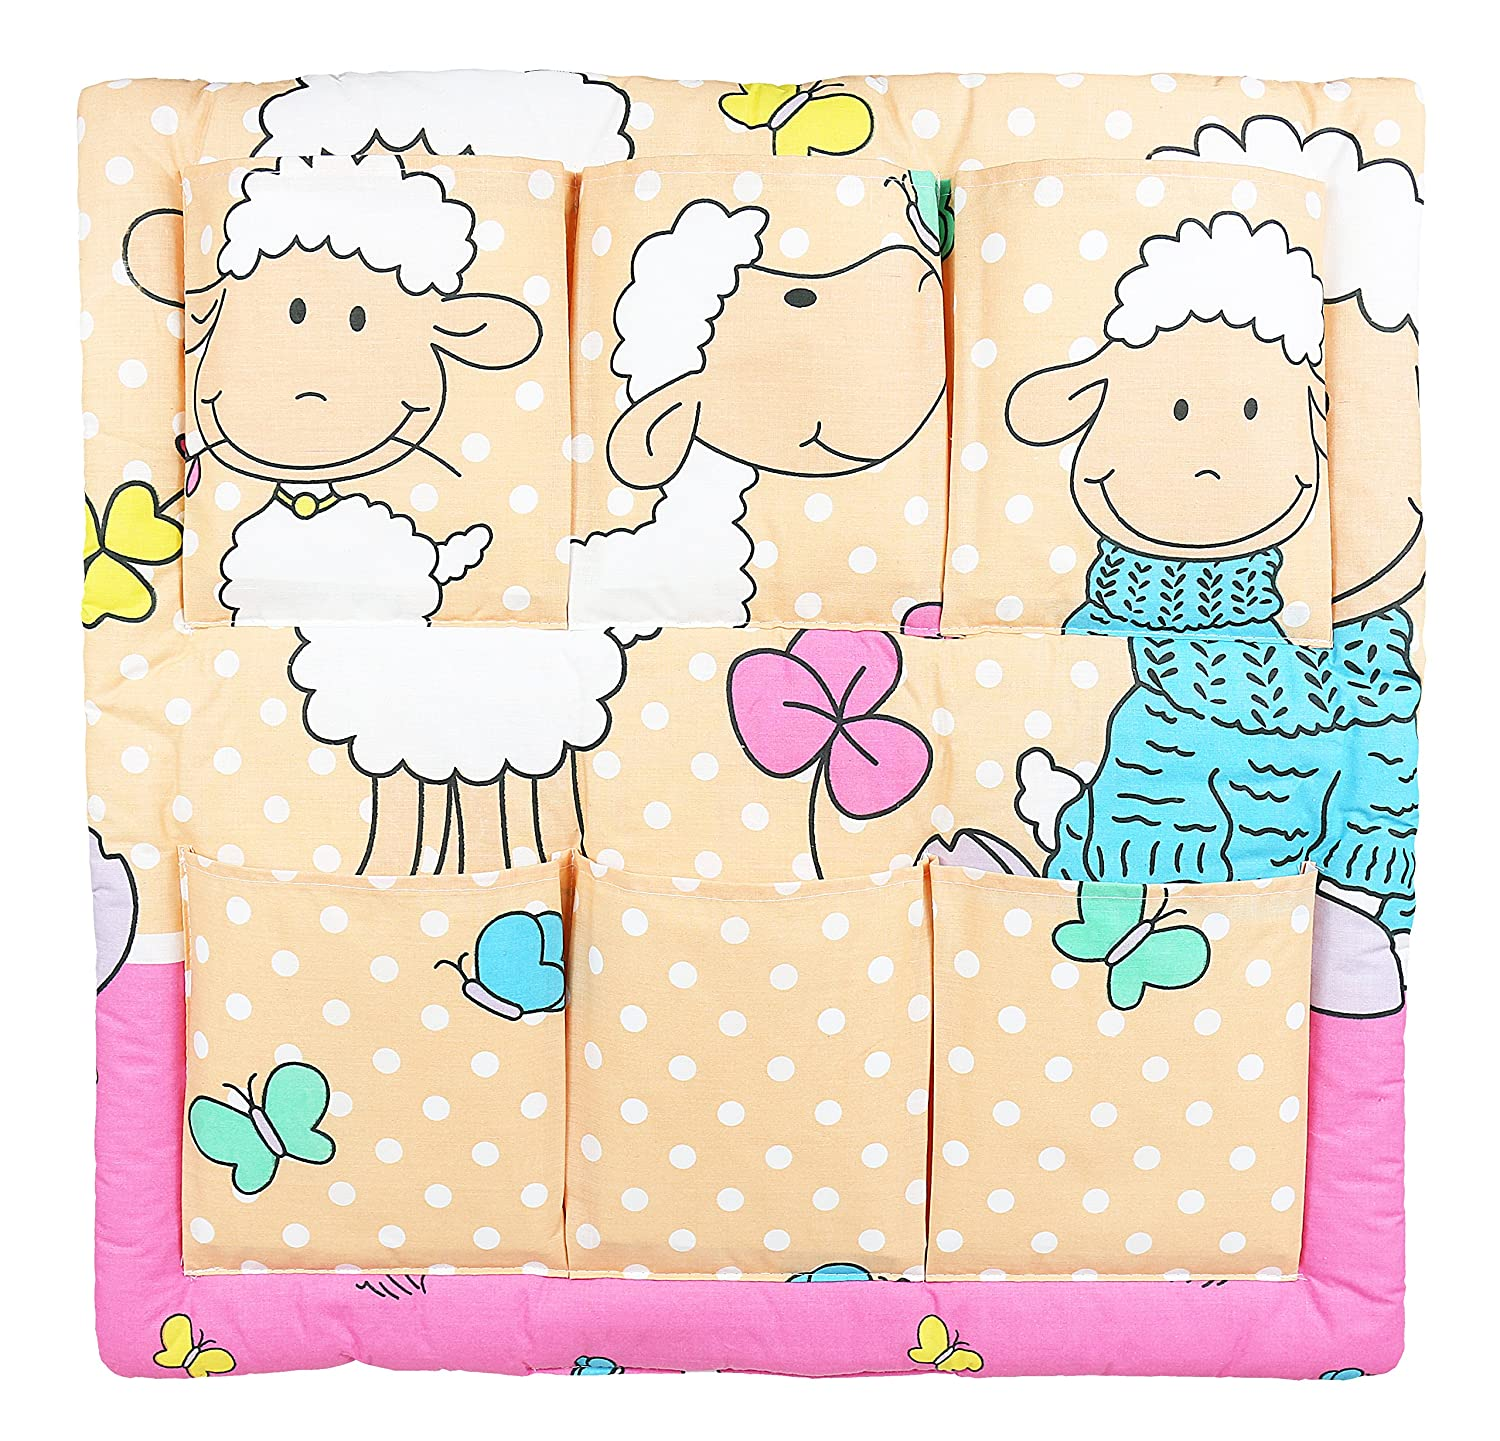 SHEEP TURQUOISE COT TIDY ORGANISER COT BED NURSERY HANGING STORAGE MANY DESIGNS 6 POCKETS BABYMAM